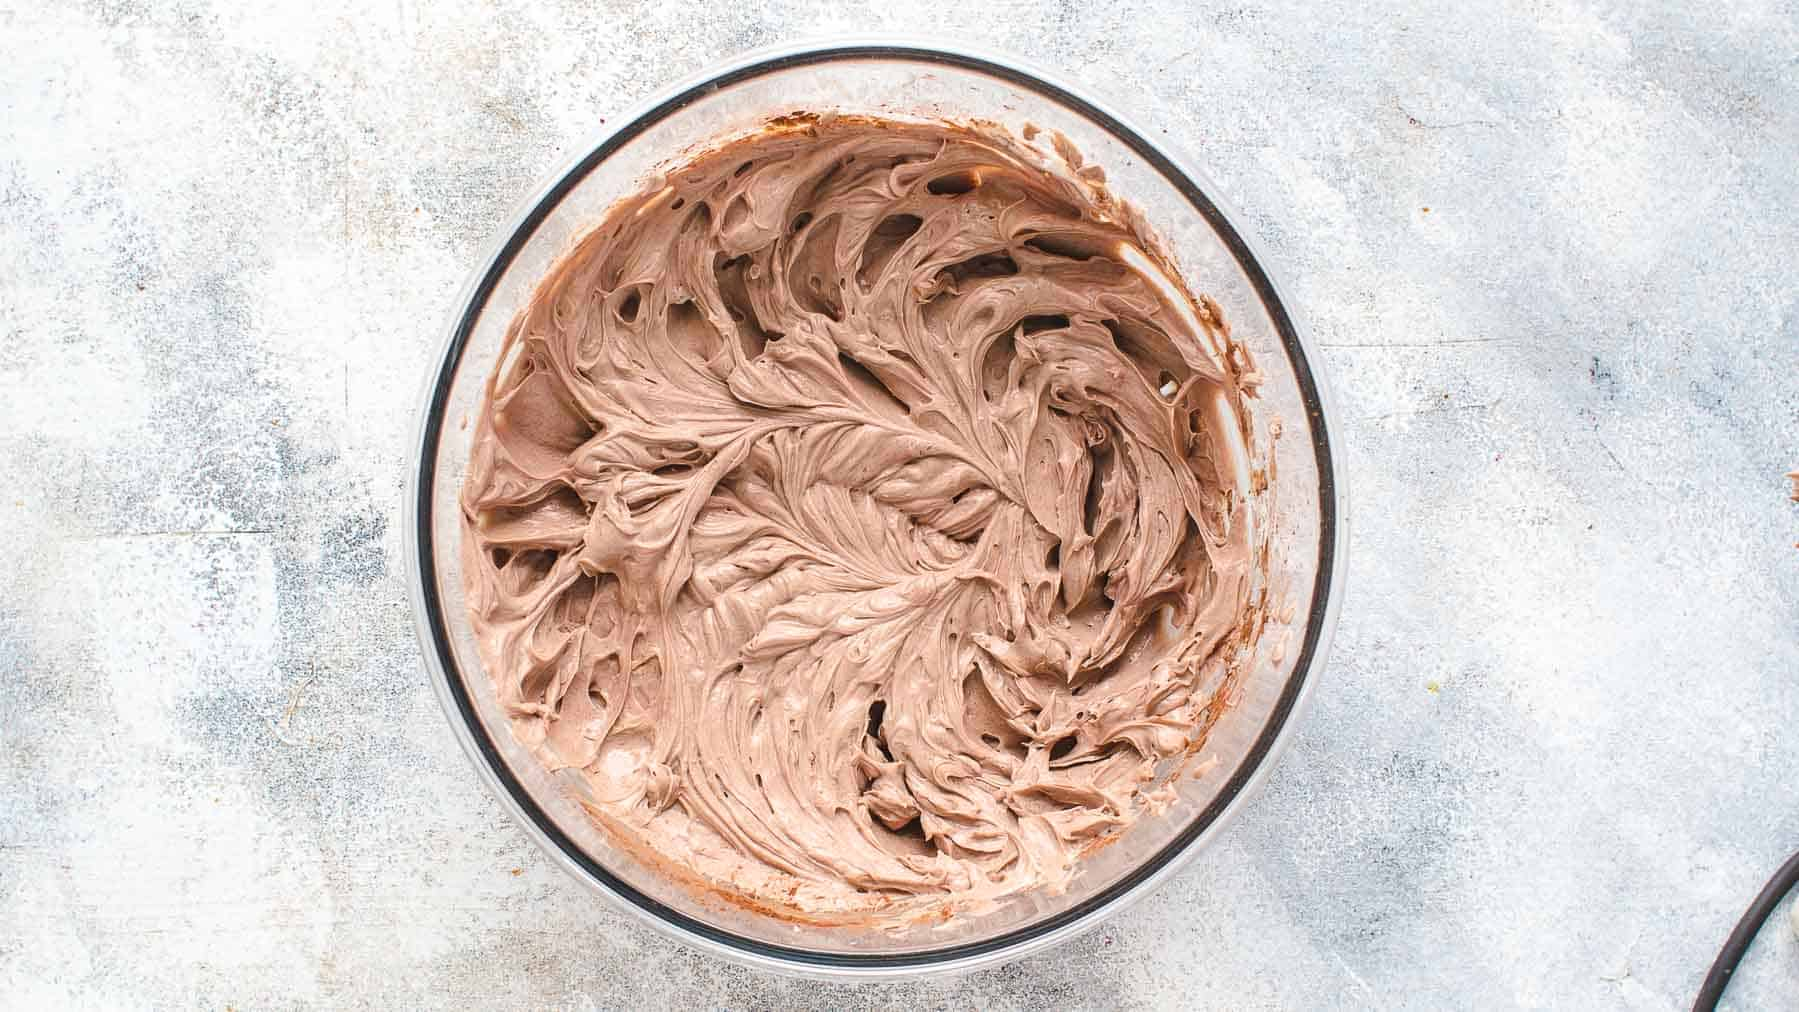 cocoa, sugar, and cream cheese mixed together in a mixing bowl